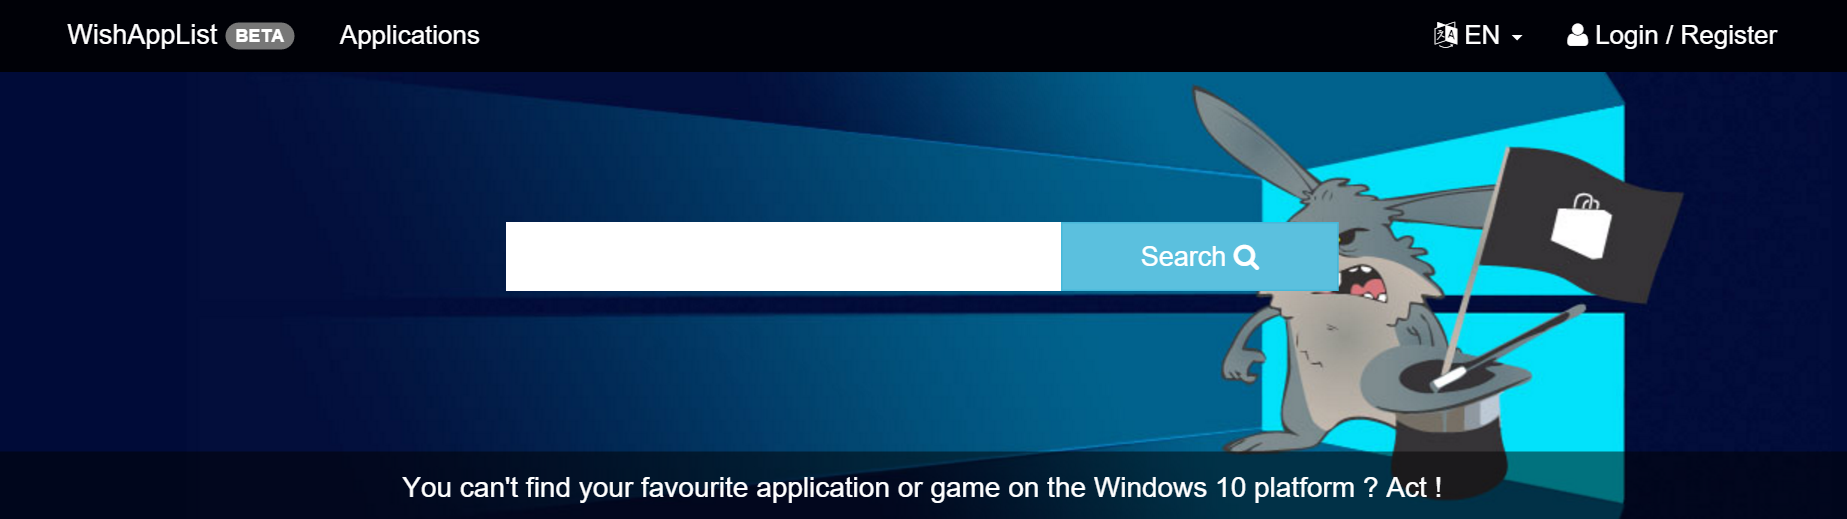 wishapplist, windows